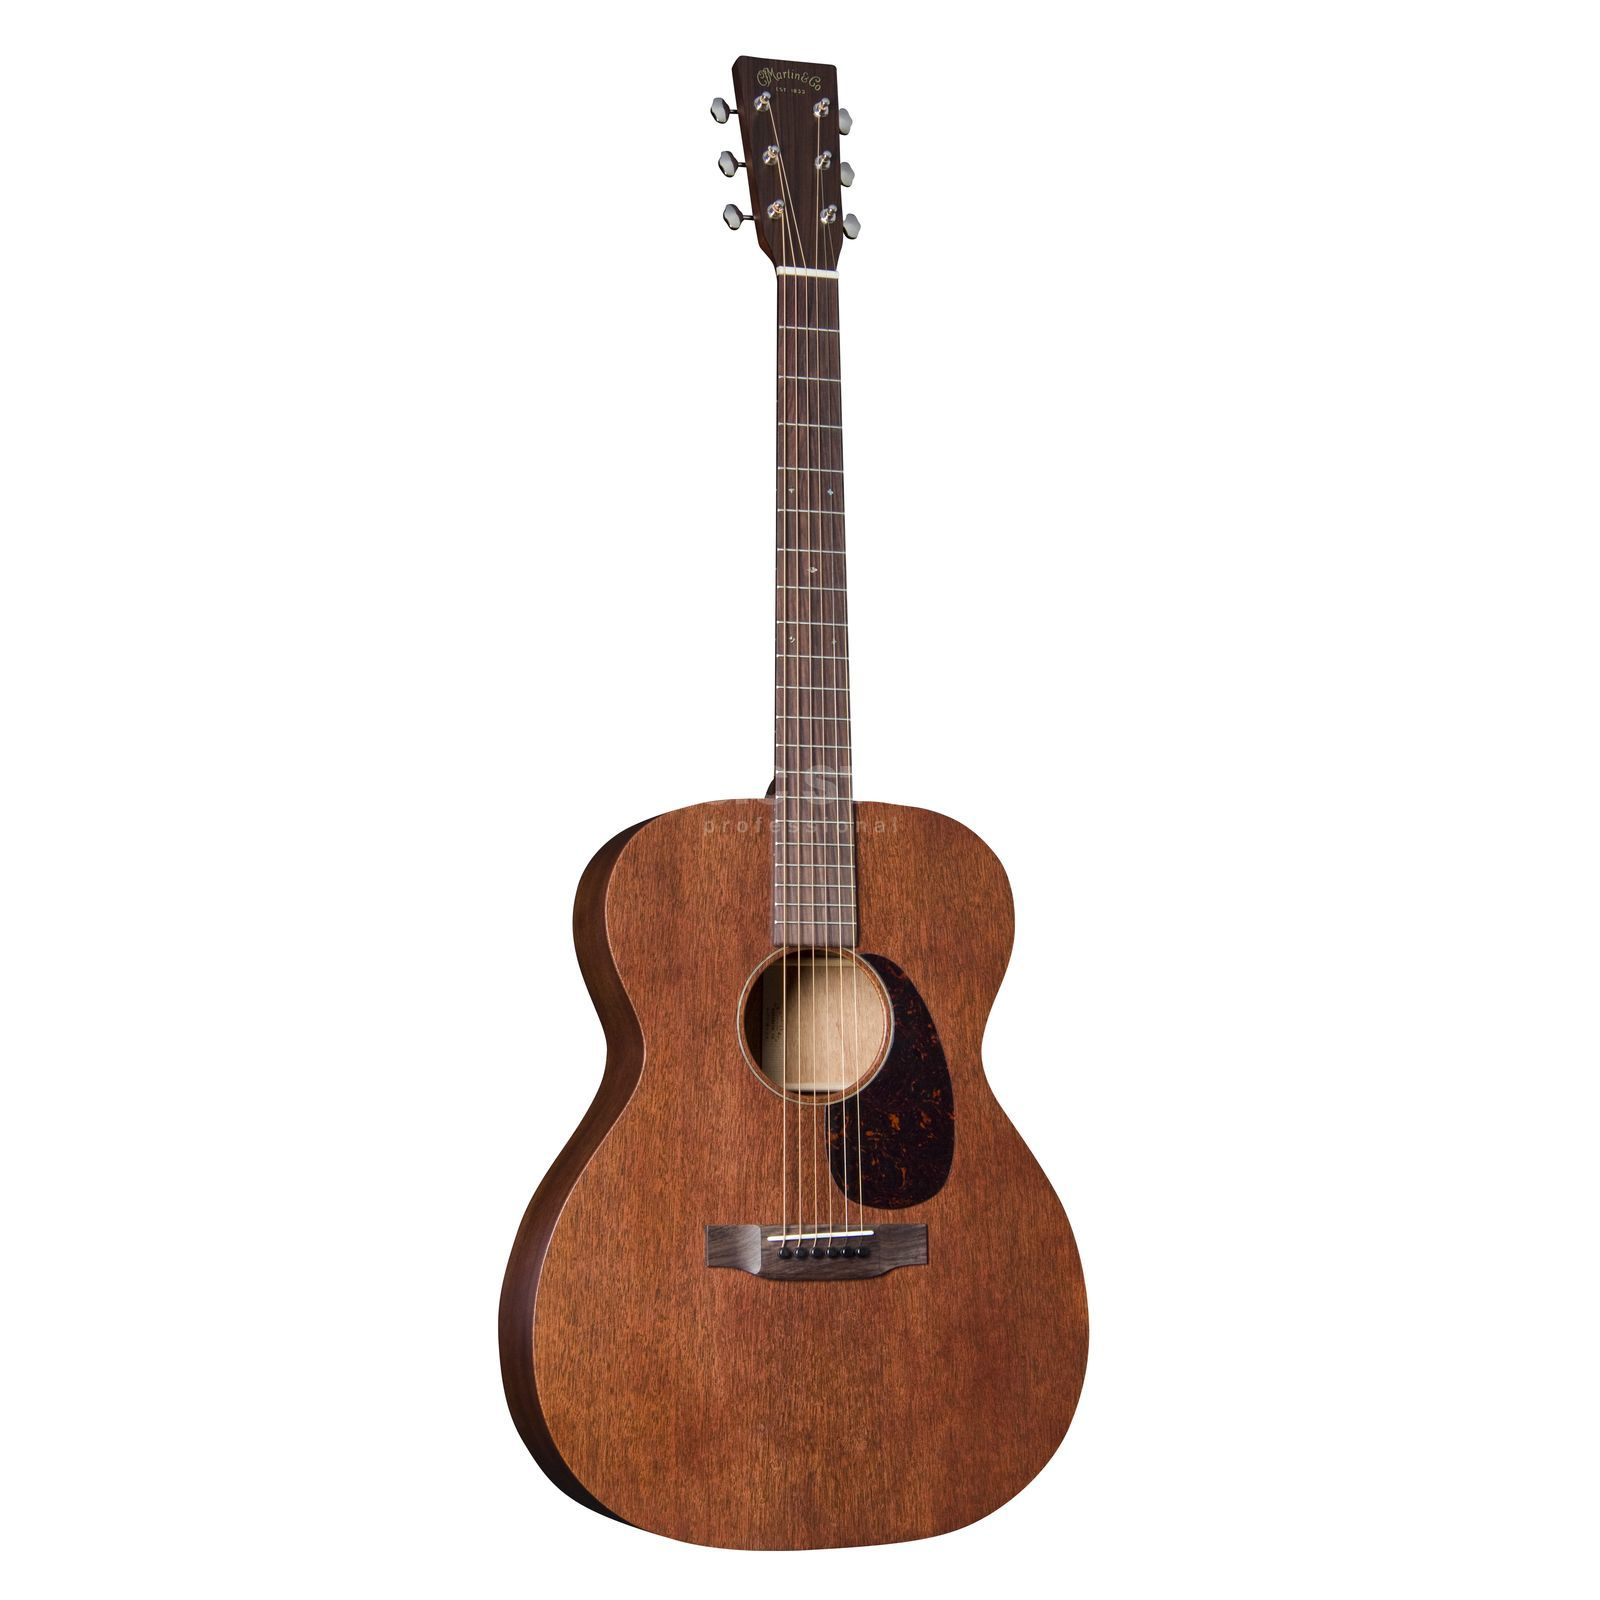 Martin Guitars 15 Series 00-15M incl. Case Product Image